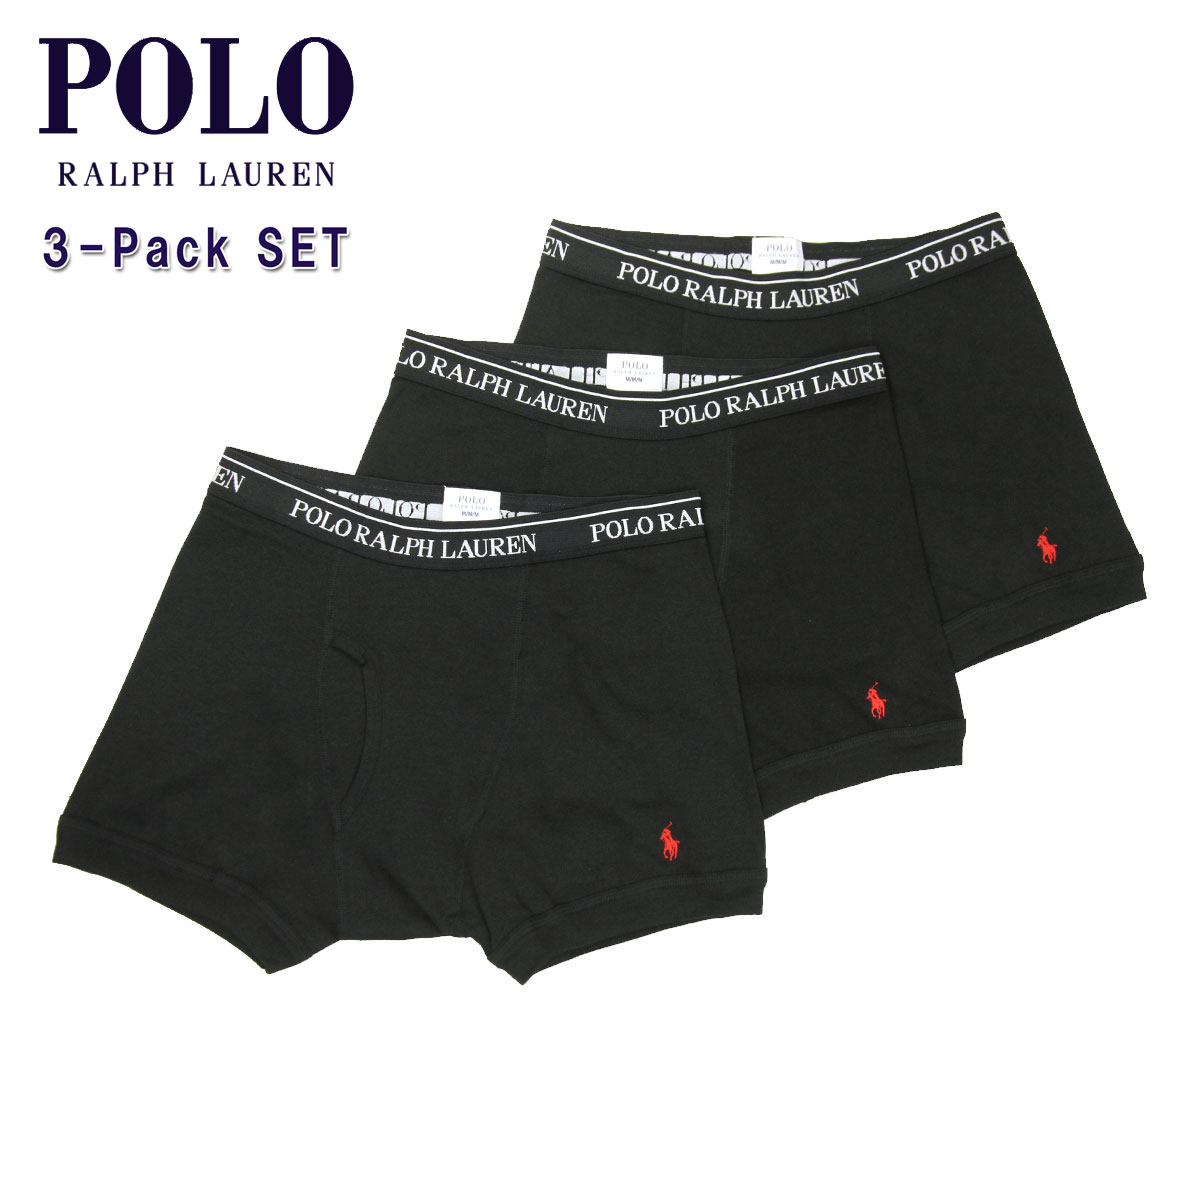 popular stores choose clearance size 7 Polo Ralph Lauren POLO RALPH LAUREN regular article men boxer briefs 3 pack  Boxer Brief 3-Pack 4023369 BLACK